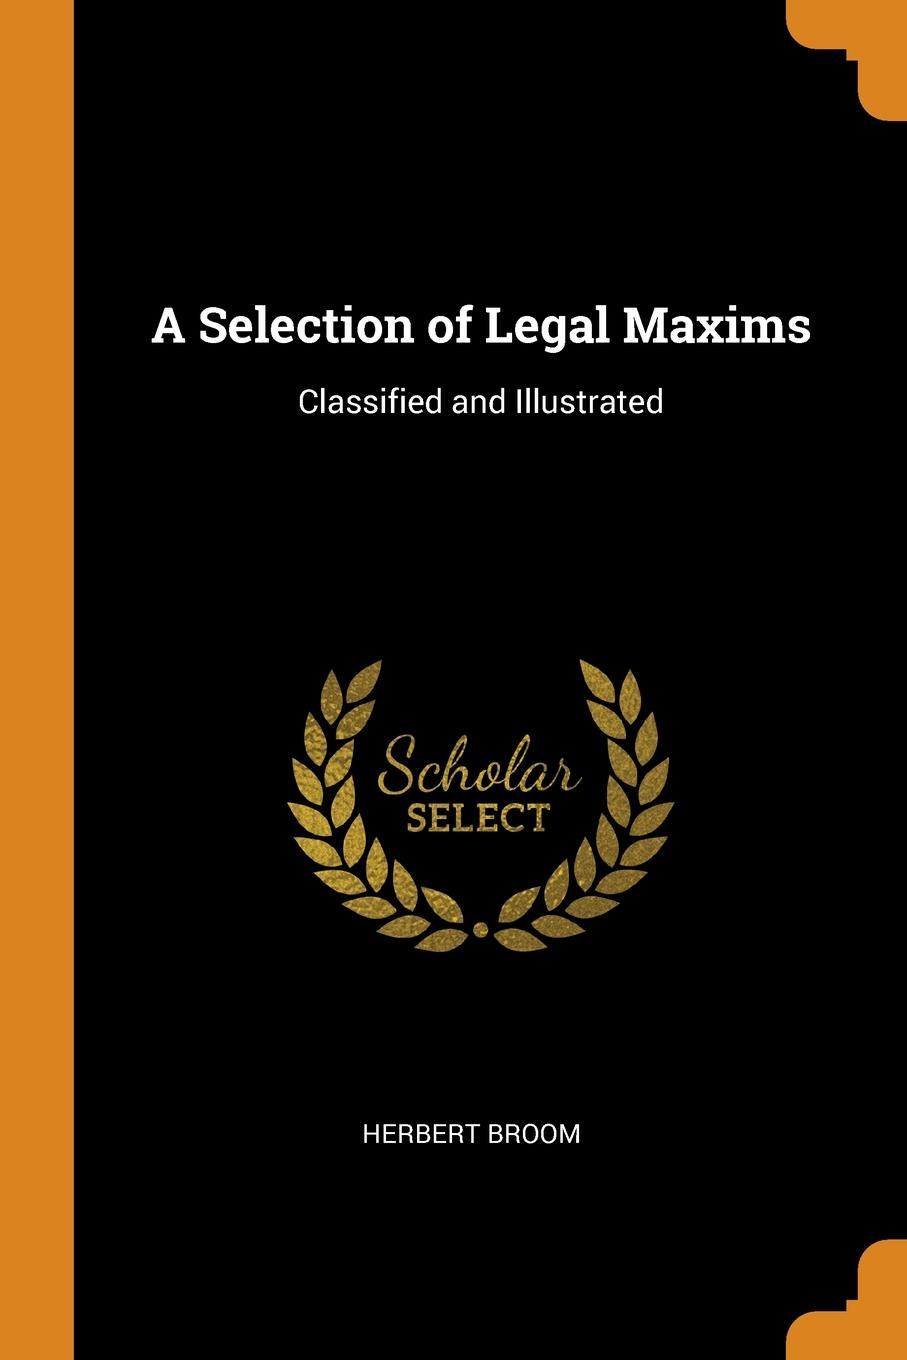 A Selection of Legal Maxims. Classified and Illustrated. Herbert Broom